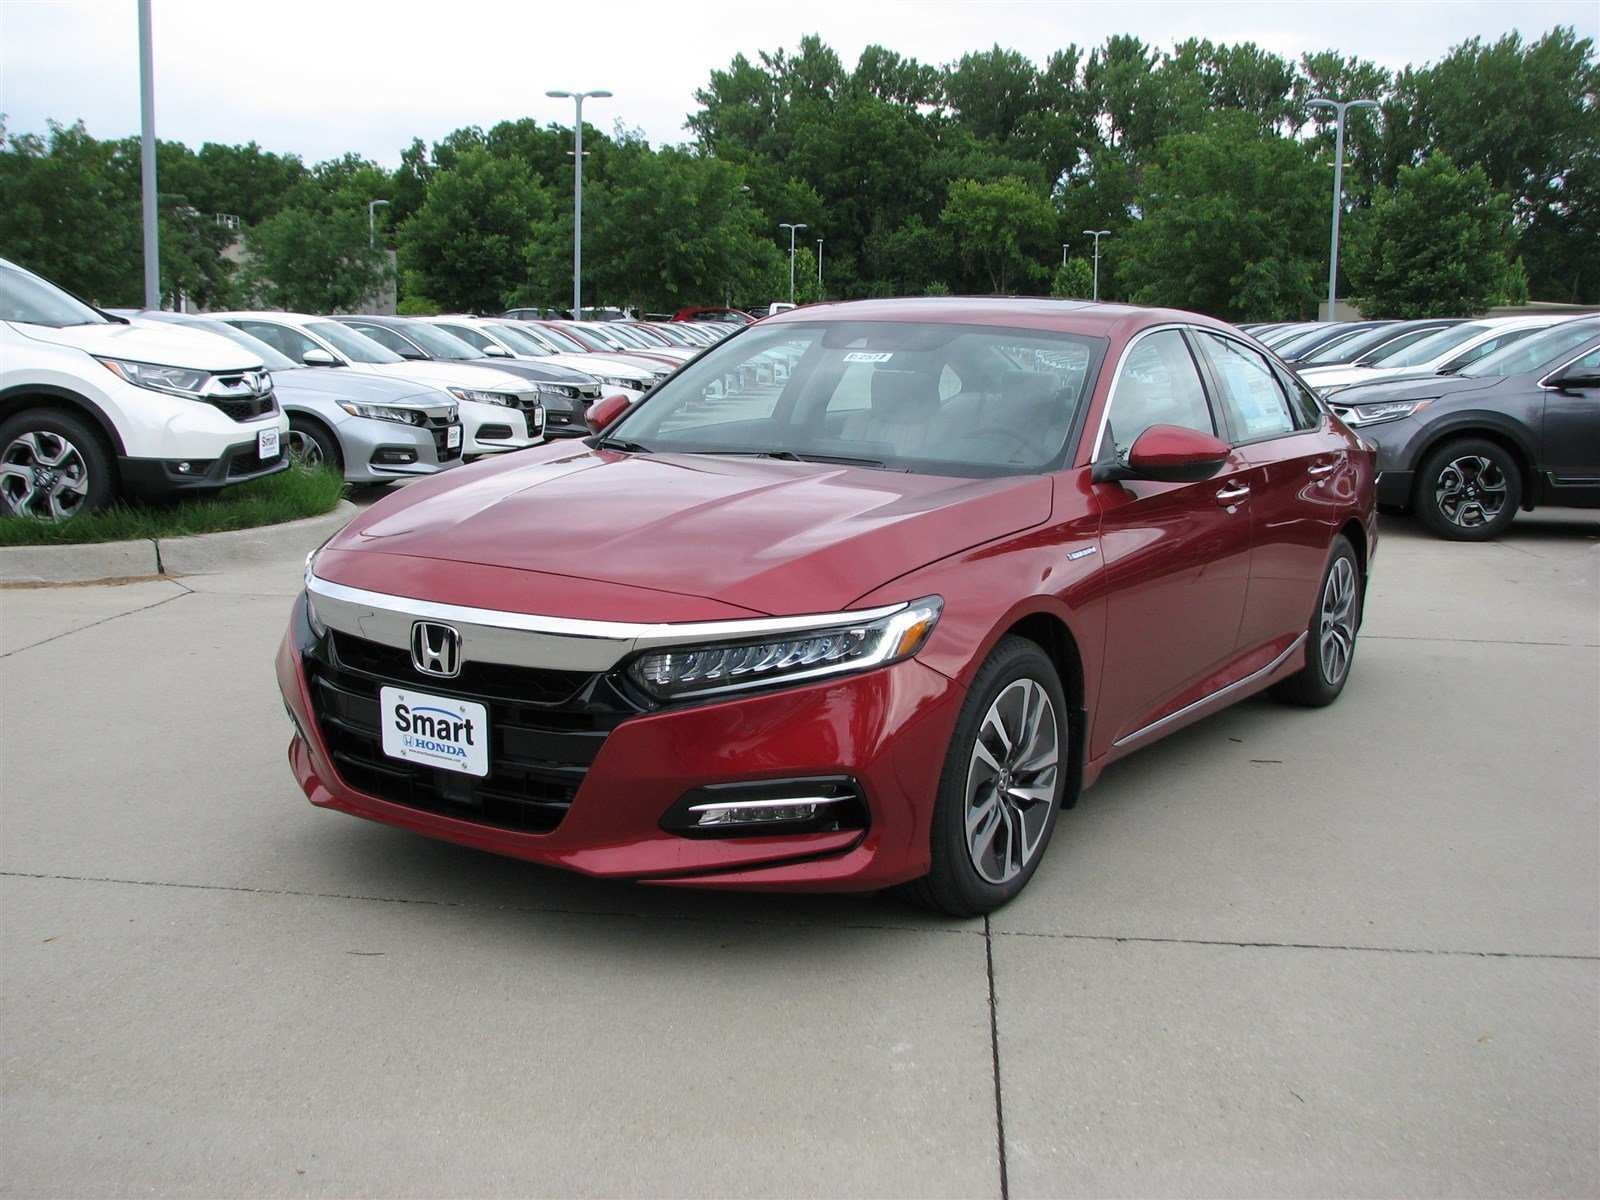 13 A 2019 Honda Accord Hybrid Price Design And Review